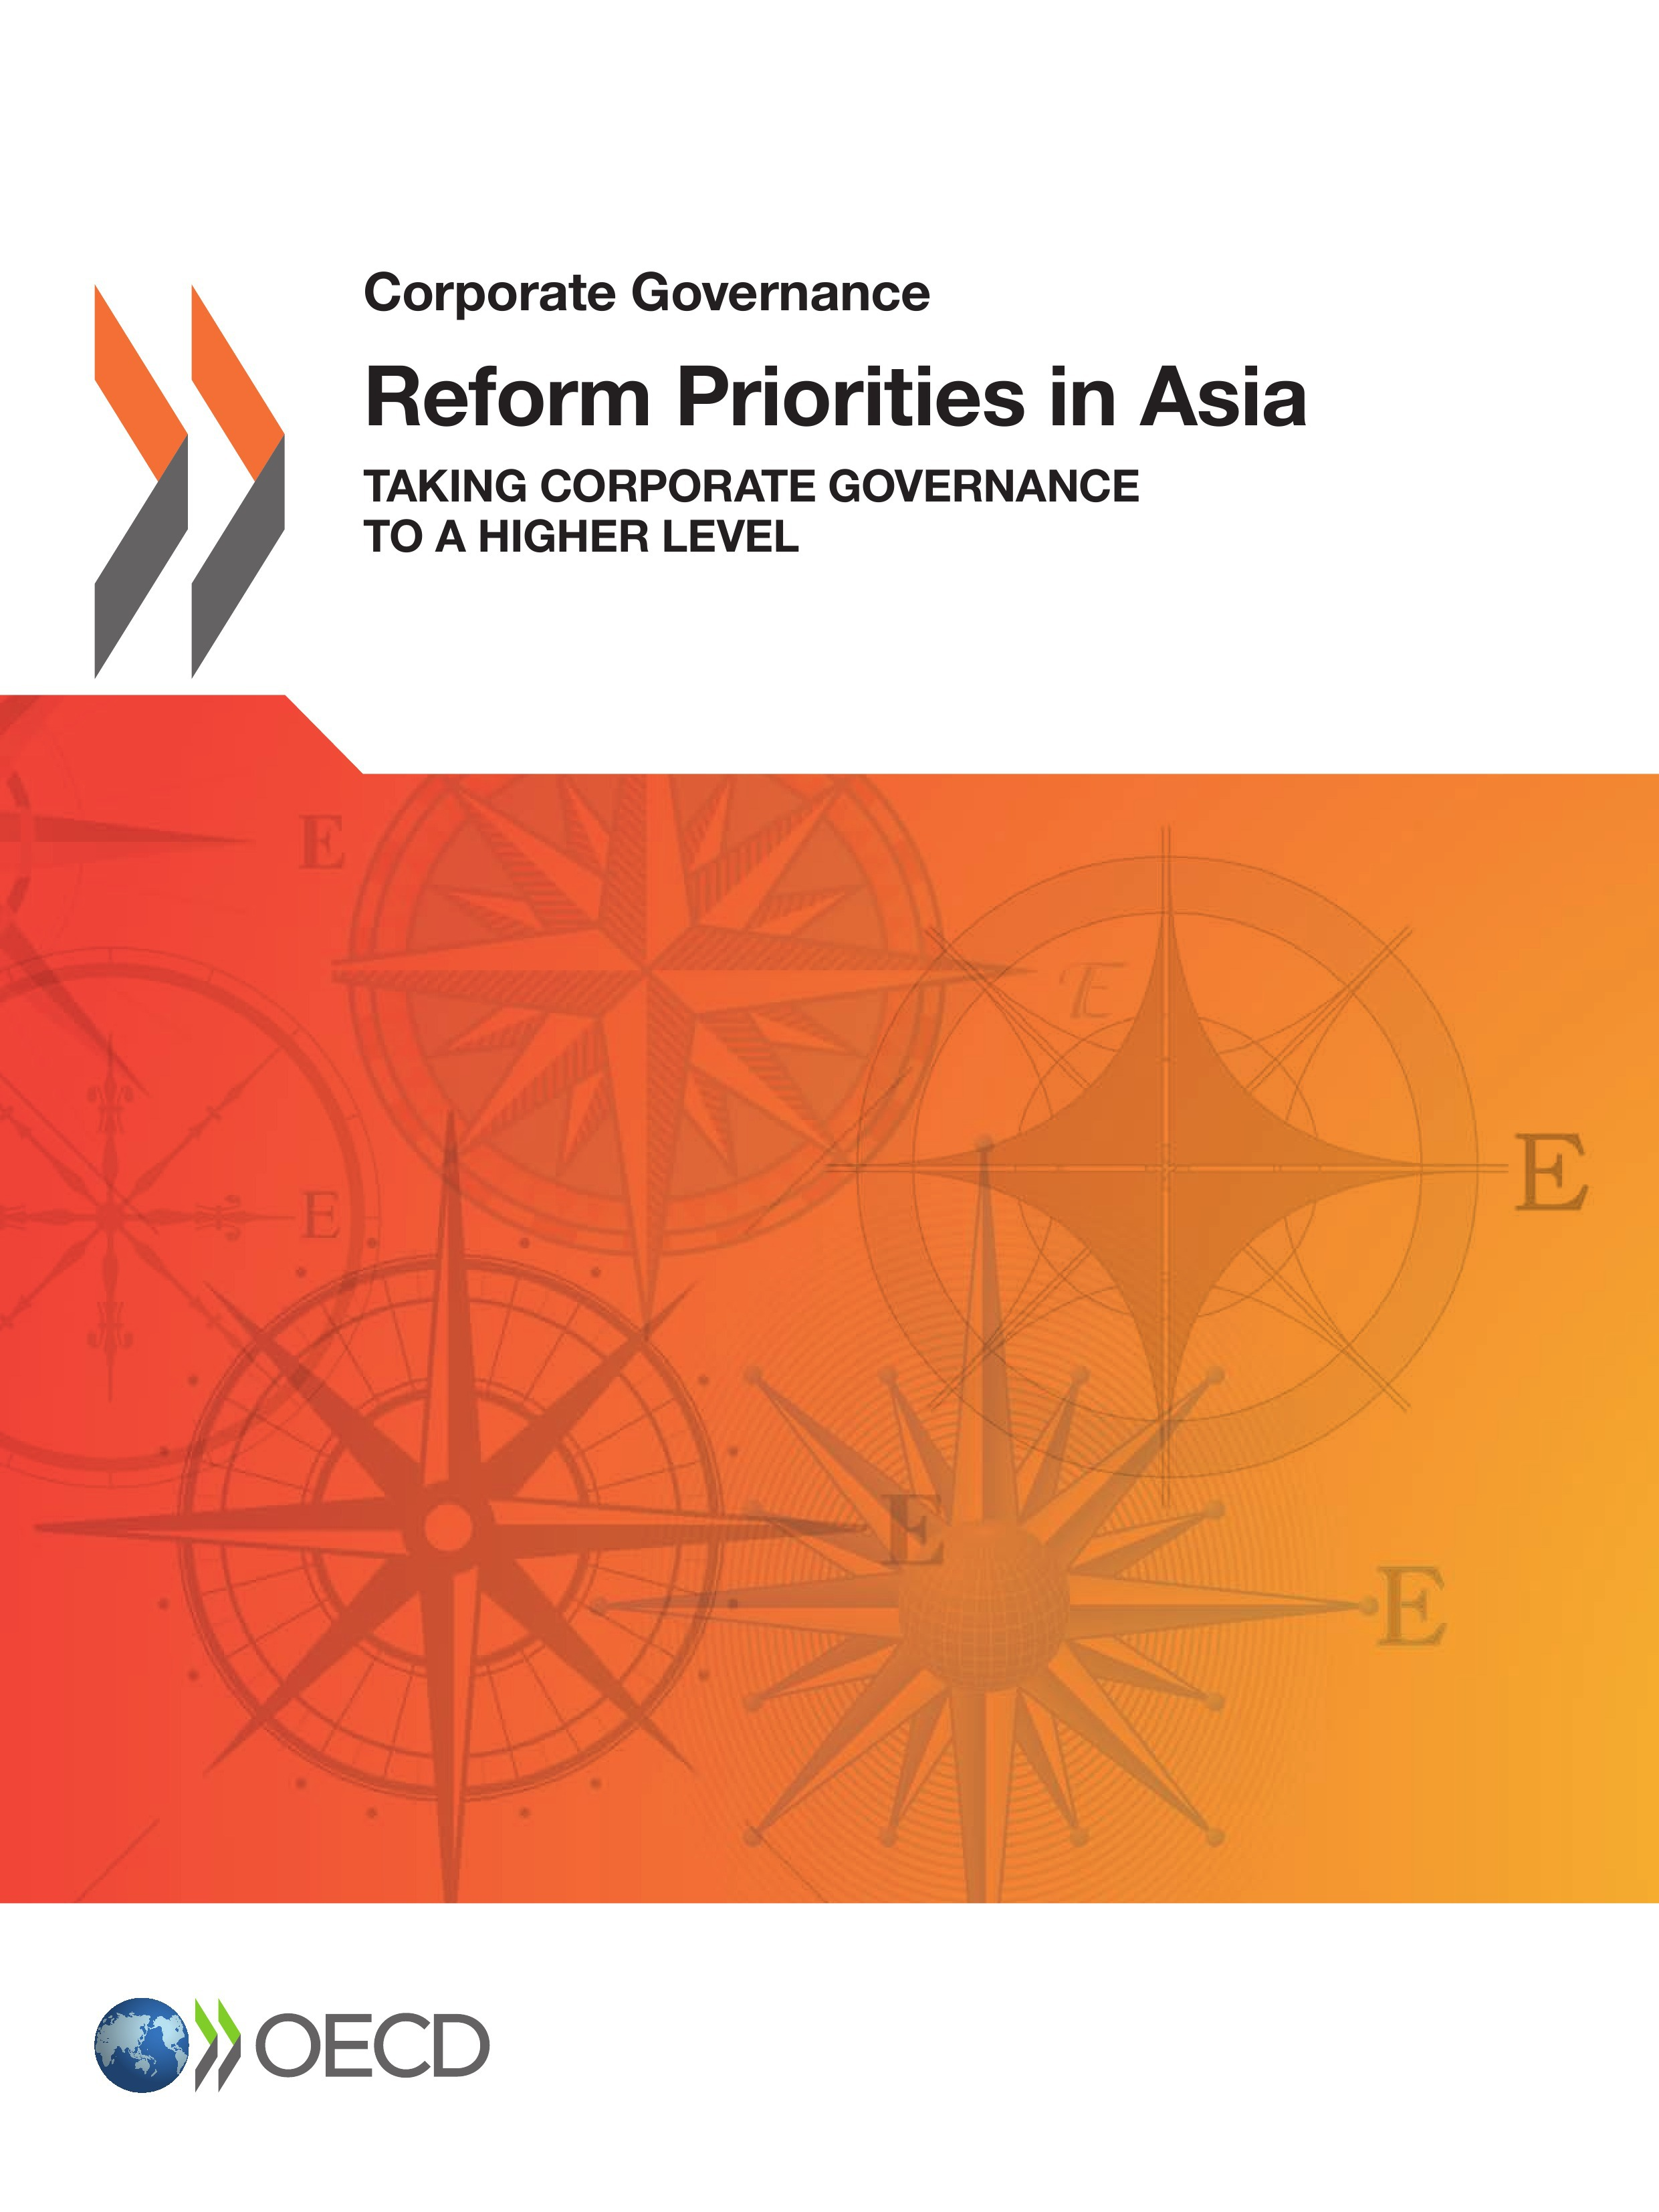 Reform priorities in Asia ; Taking Corporate Governance to a Higher Level